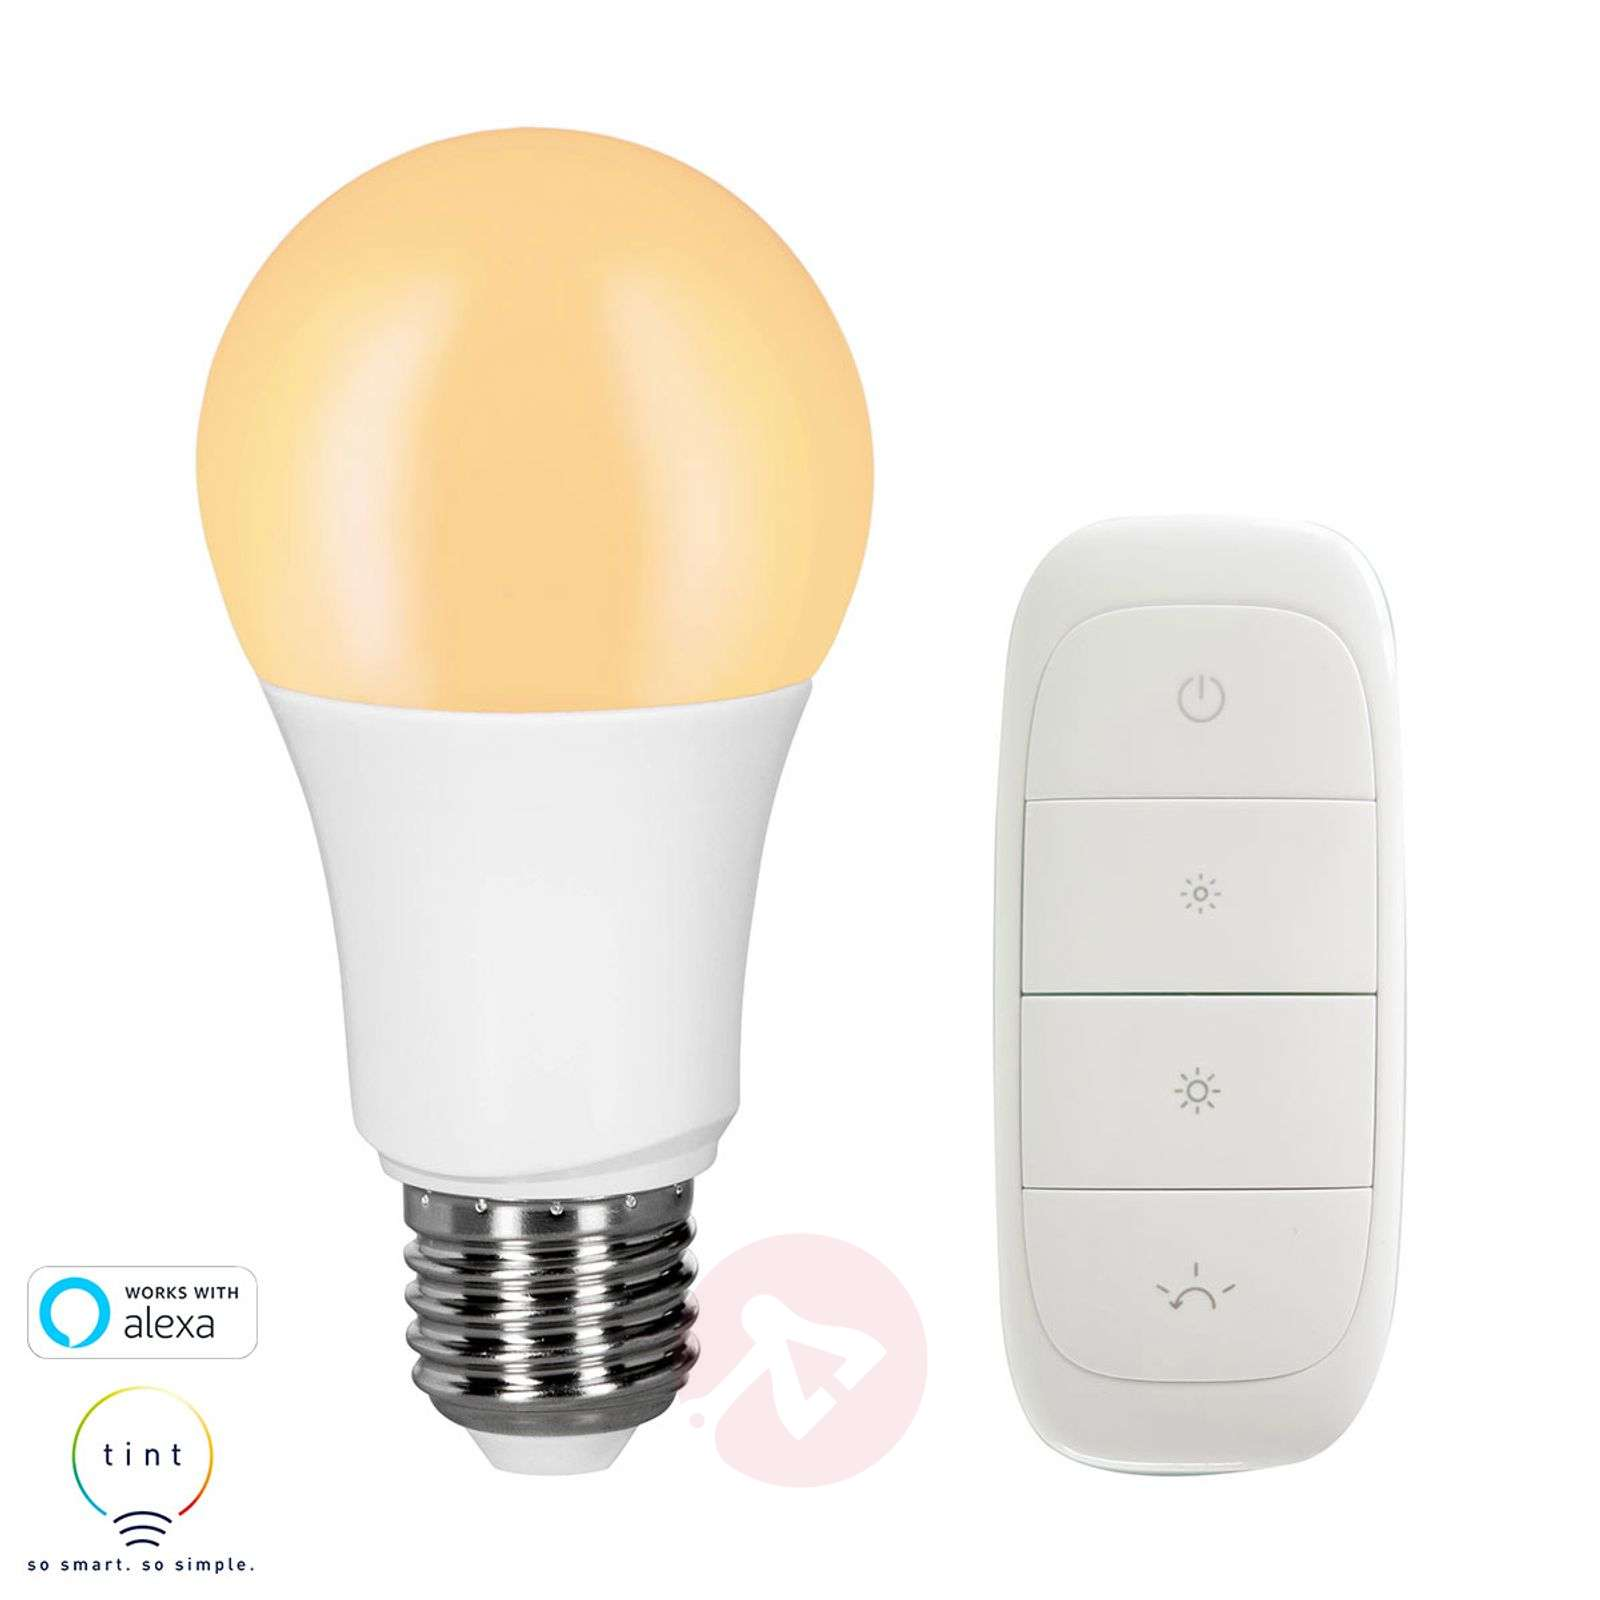 Müller Licht tint dimming ampoule LED E27 9W+dimm.-6520314-01